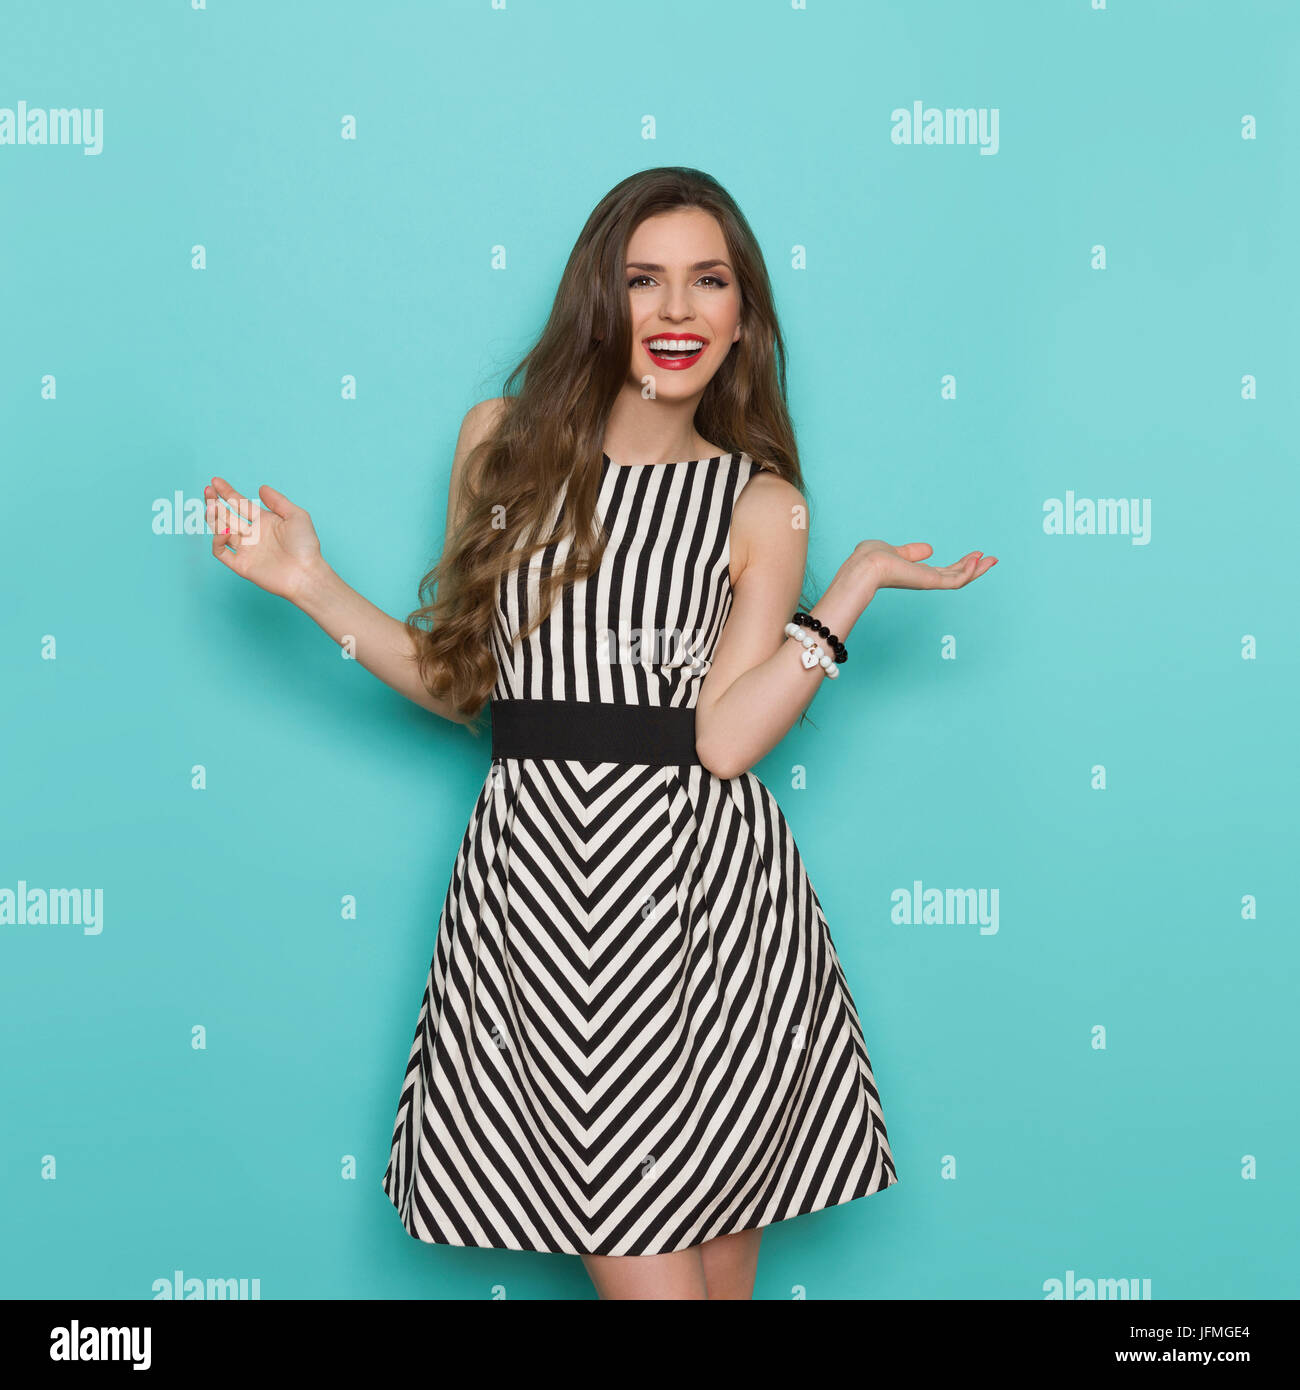 d1376f984f2 Smiling attractive woman in black and white striped dress standing with  arms outstretched and looking at camera. Three quarter length studio shot  on t